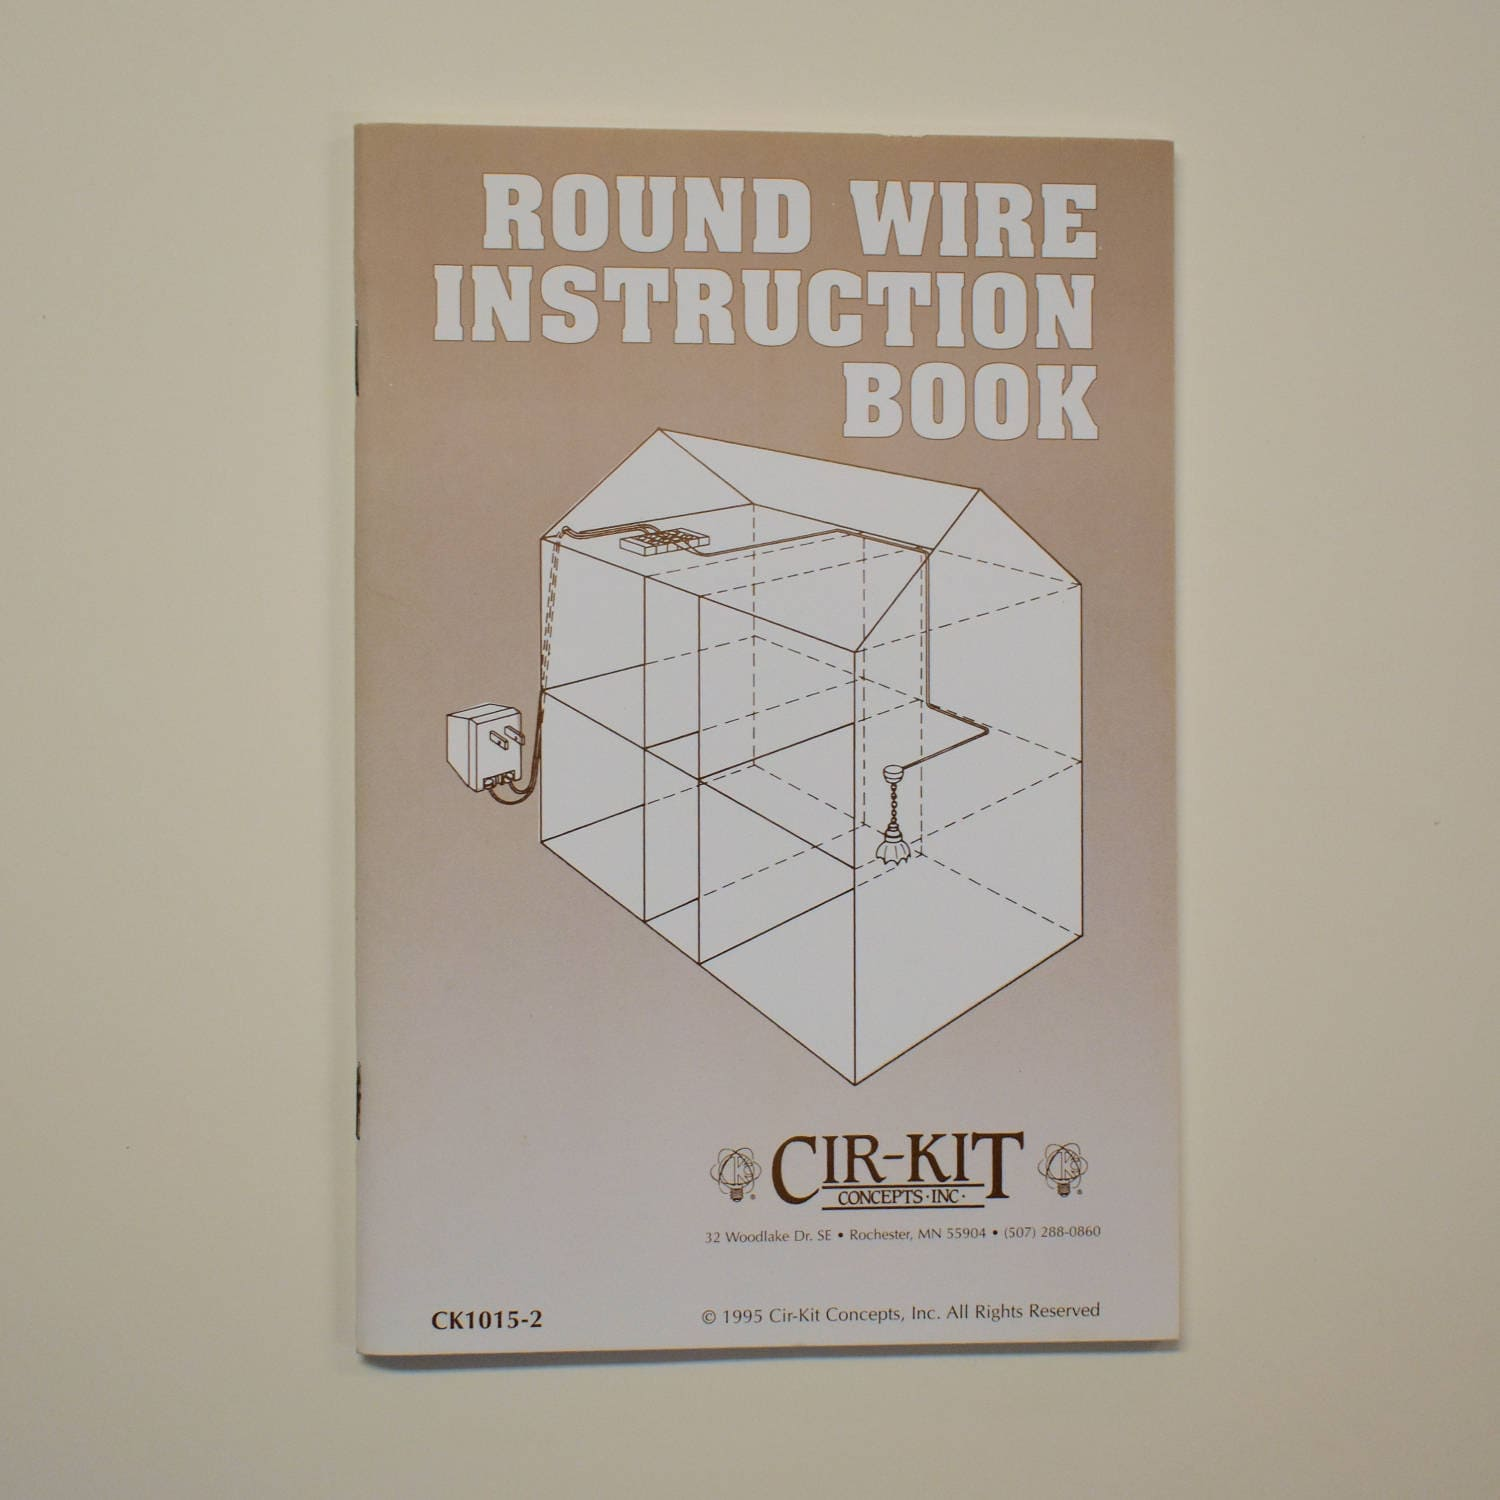 round wire instruction book, Cirkit Concepts, for installation of ...